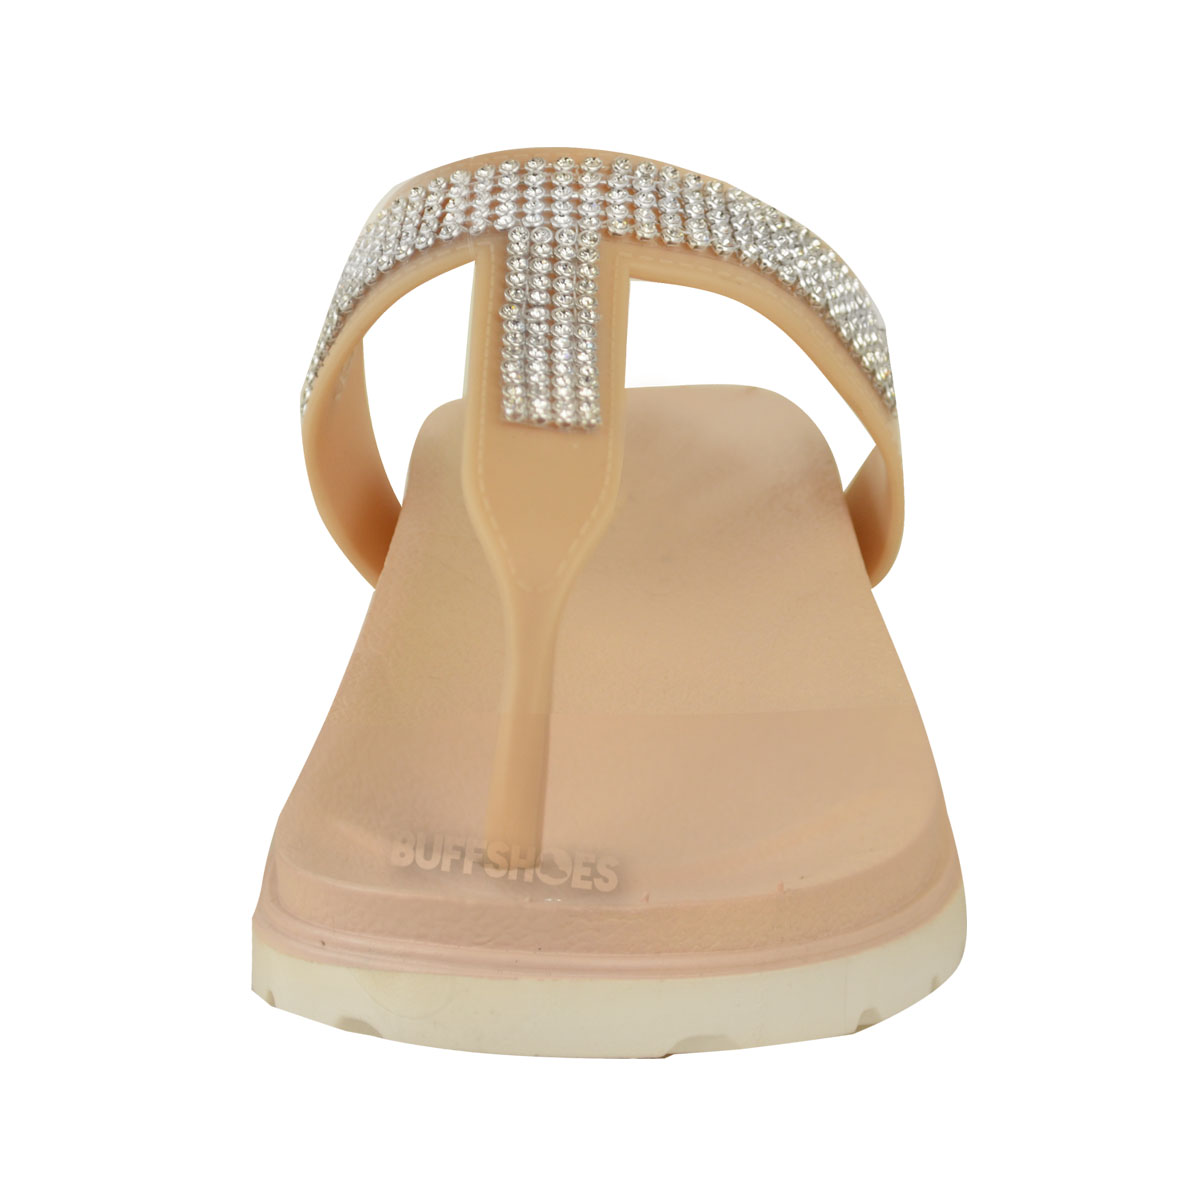 Womens-Ladies-Summer-Jelly-Sandals-Diamante-Wedge-Cushioned-Comfort-Shoes-Size thumbnail 12